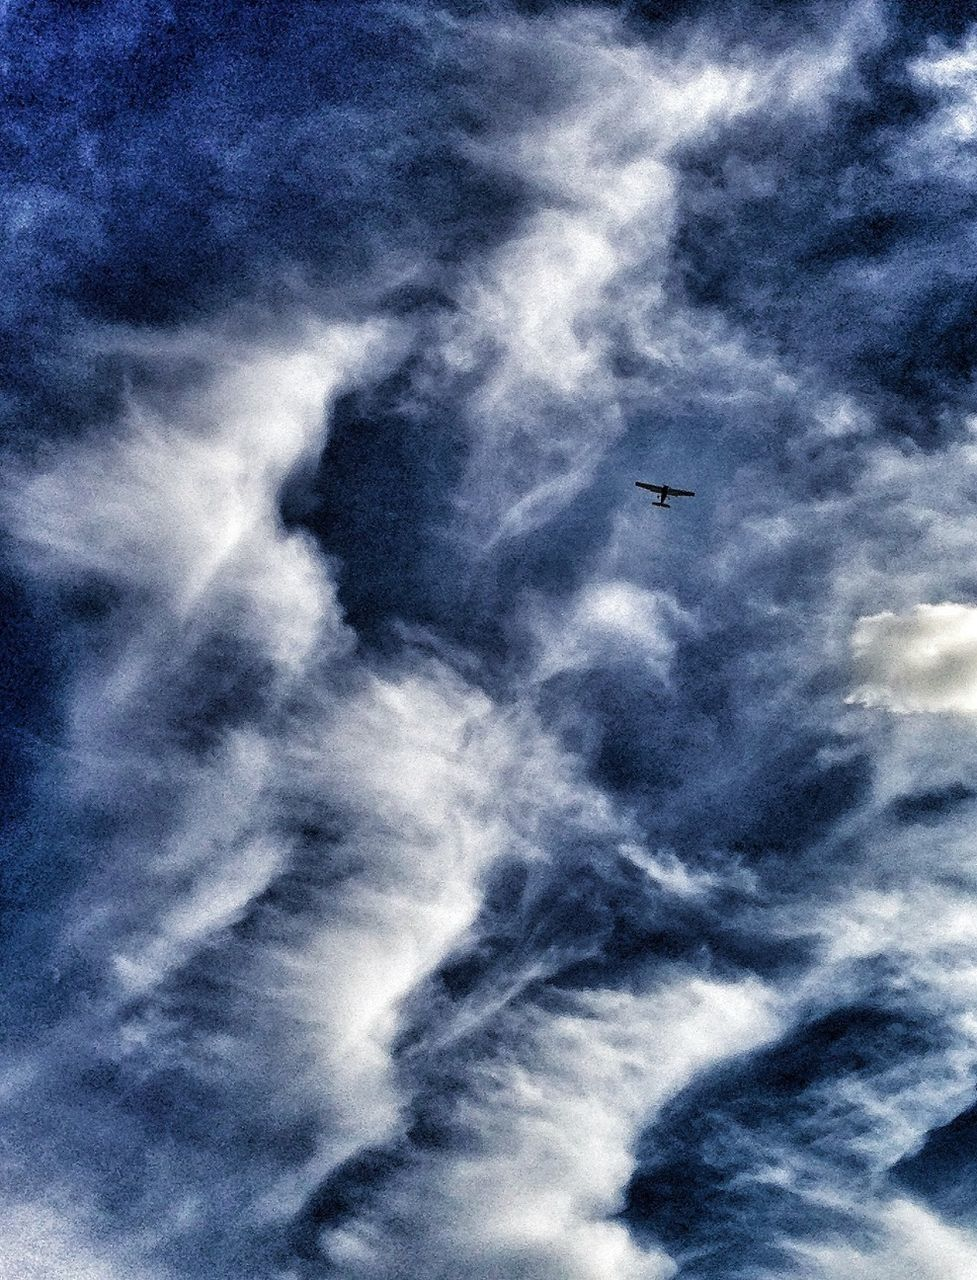 flying, low angle view, sky, airplane, cloud - sky, mid-air, no people, transportation, day, air vehicle, outdoors, sky only, journey, blue, nature, bird, animal themes, beauty in nature, vapor trail